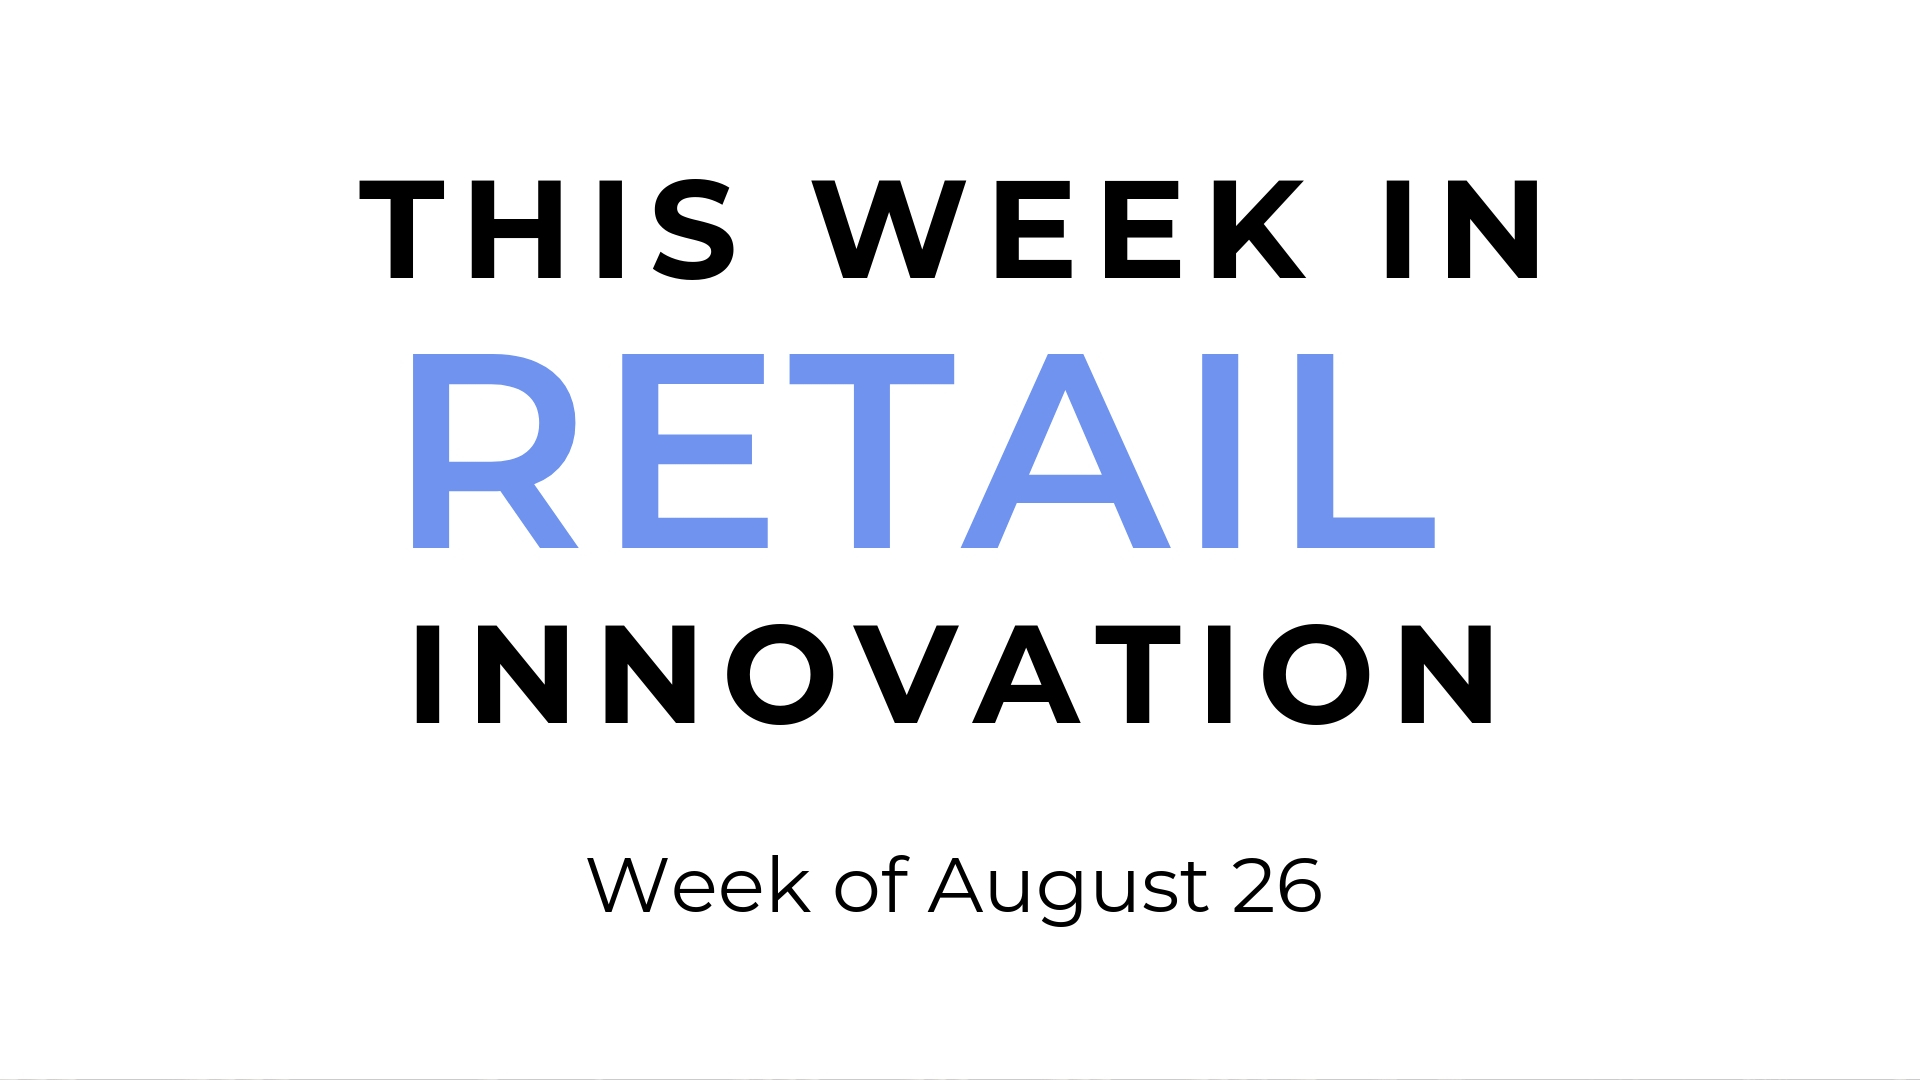 Perch_Content_This Week in Retail Innovation_Stores are Digital_Betabrand Podcasts_Walmart vs Instacart